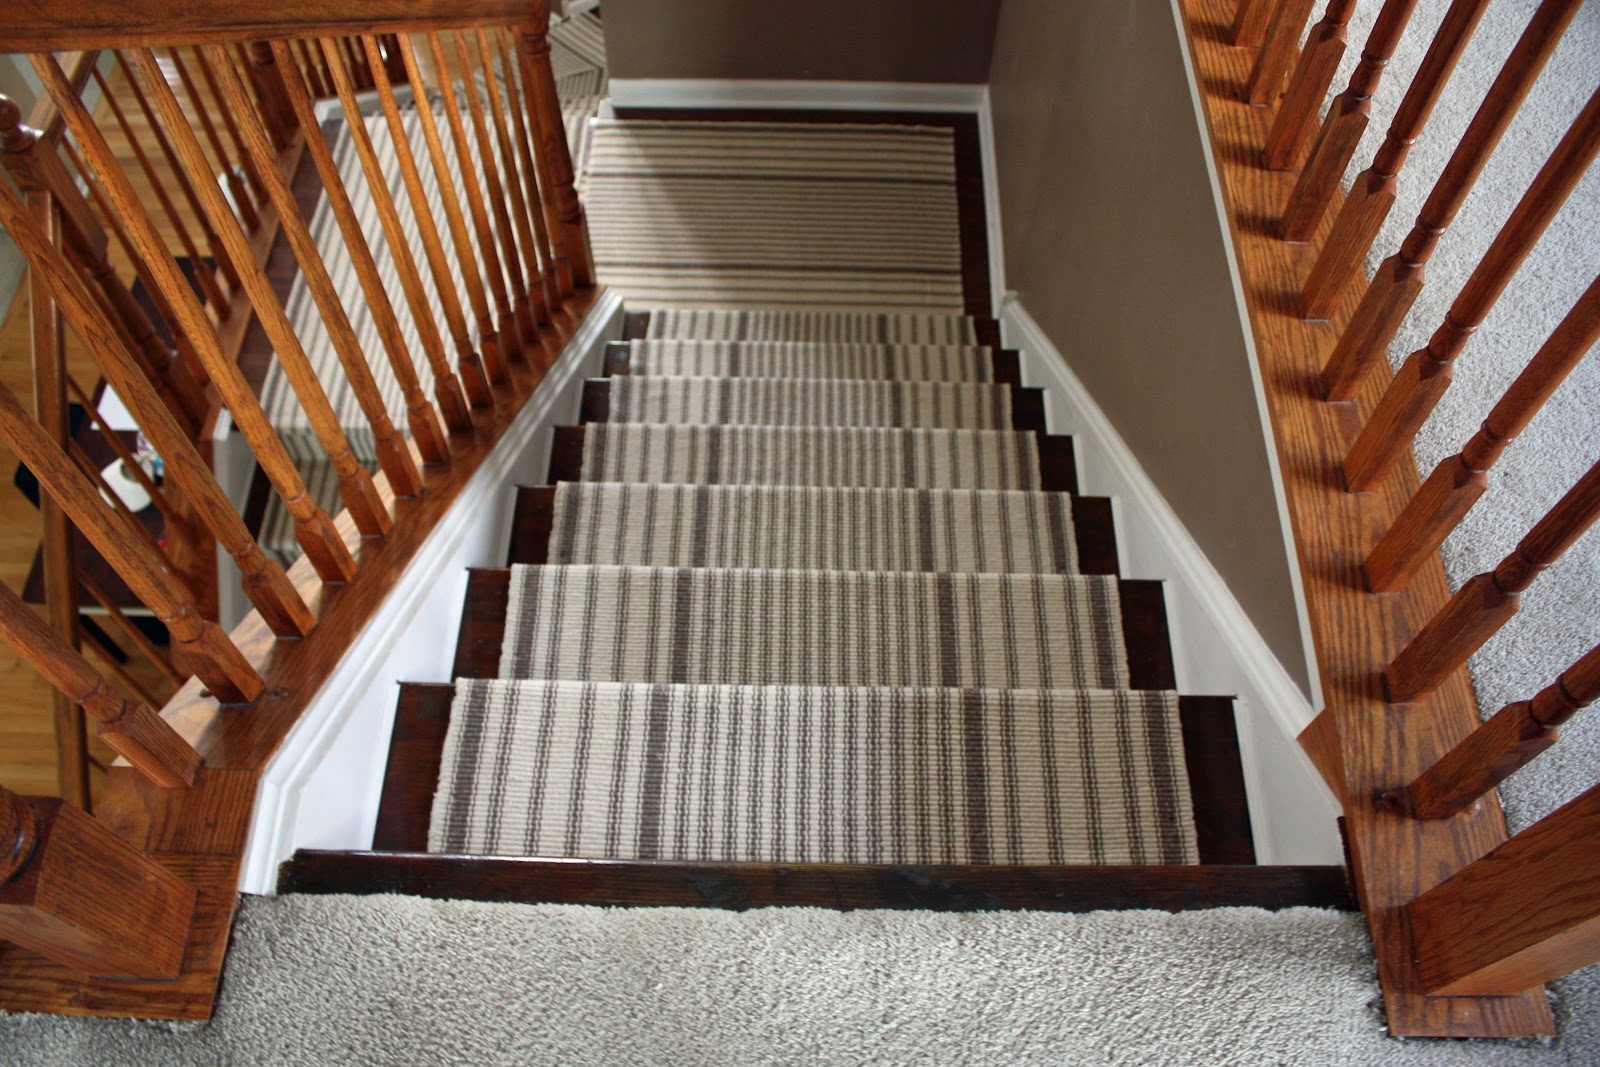 carpet runner for stairs over carpet photo - 6